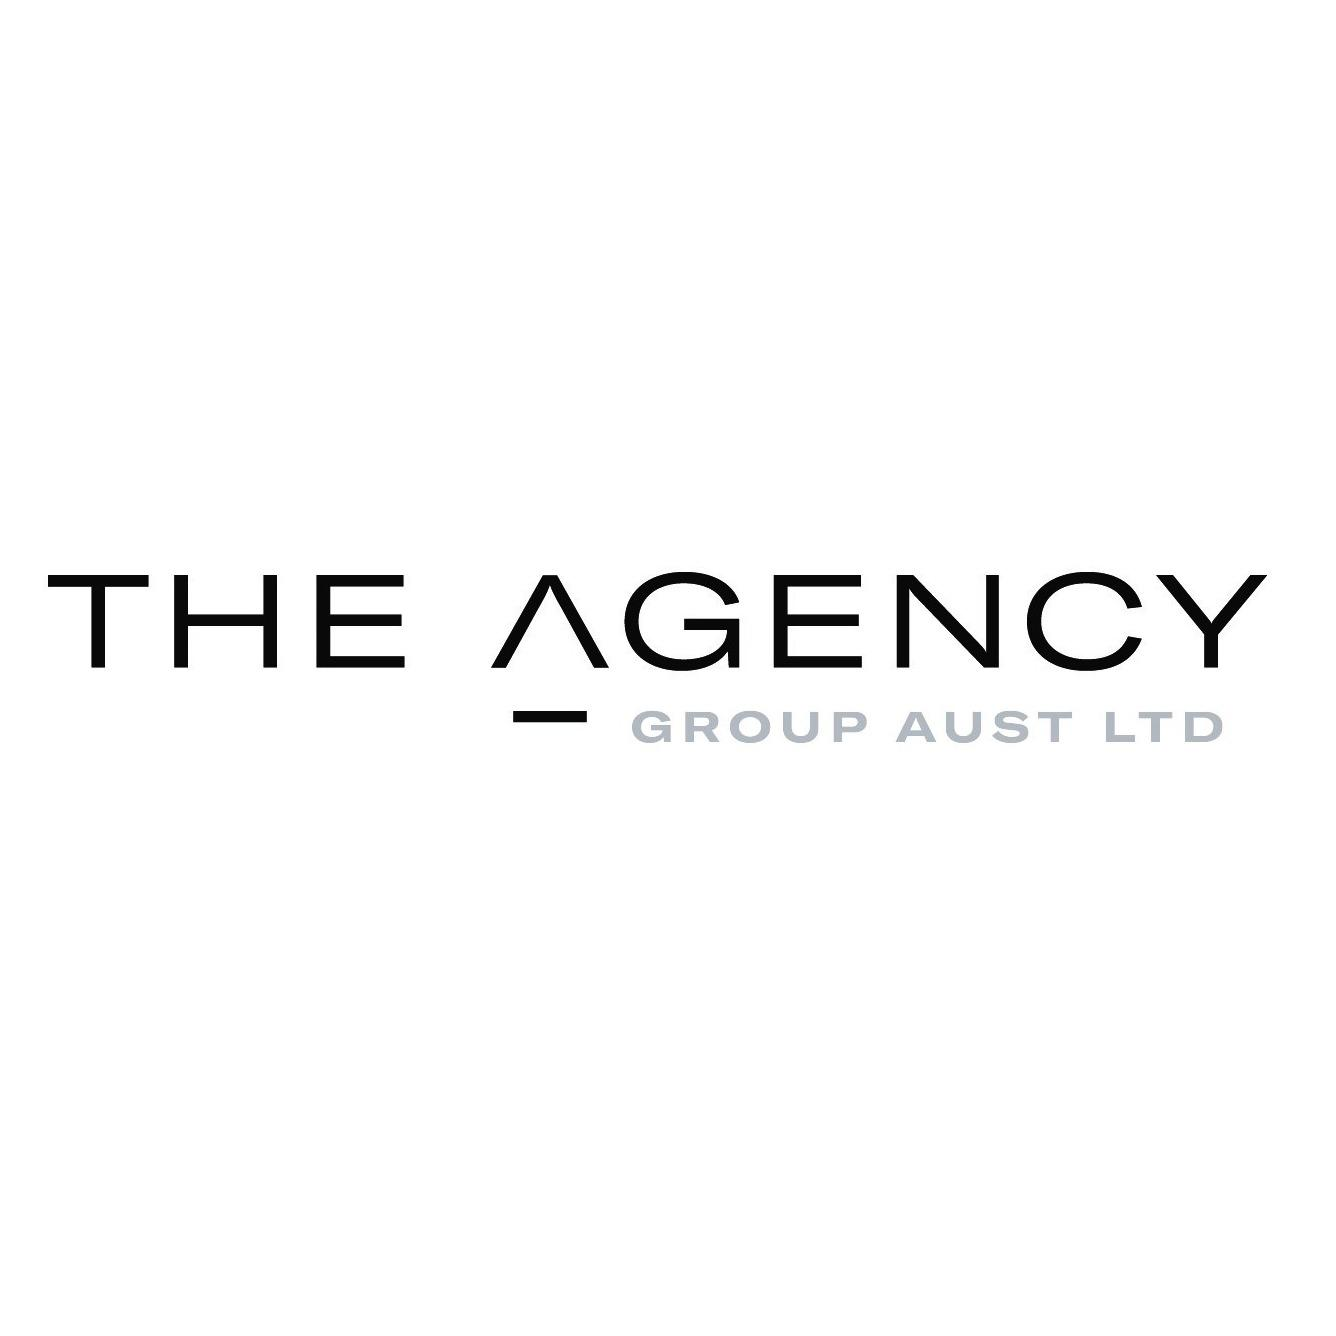 The Agency Group - Perth, WA 6000 - (08) 9204 7955 | ShowMeLocal.com